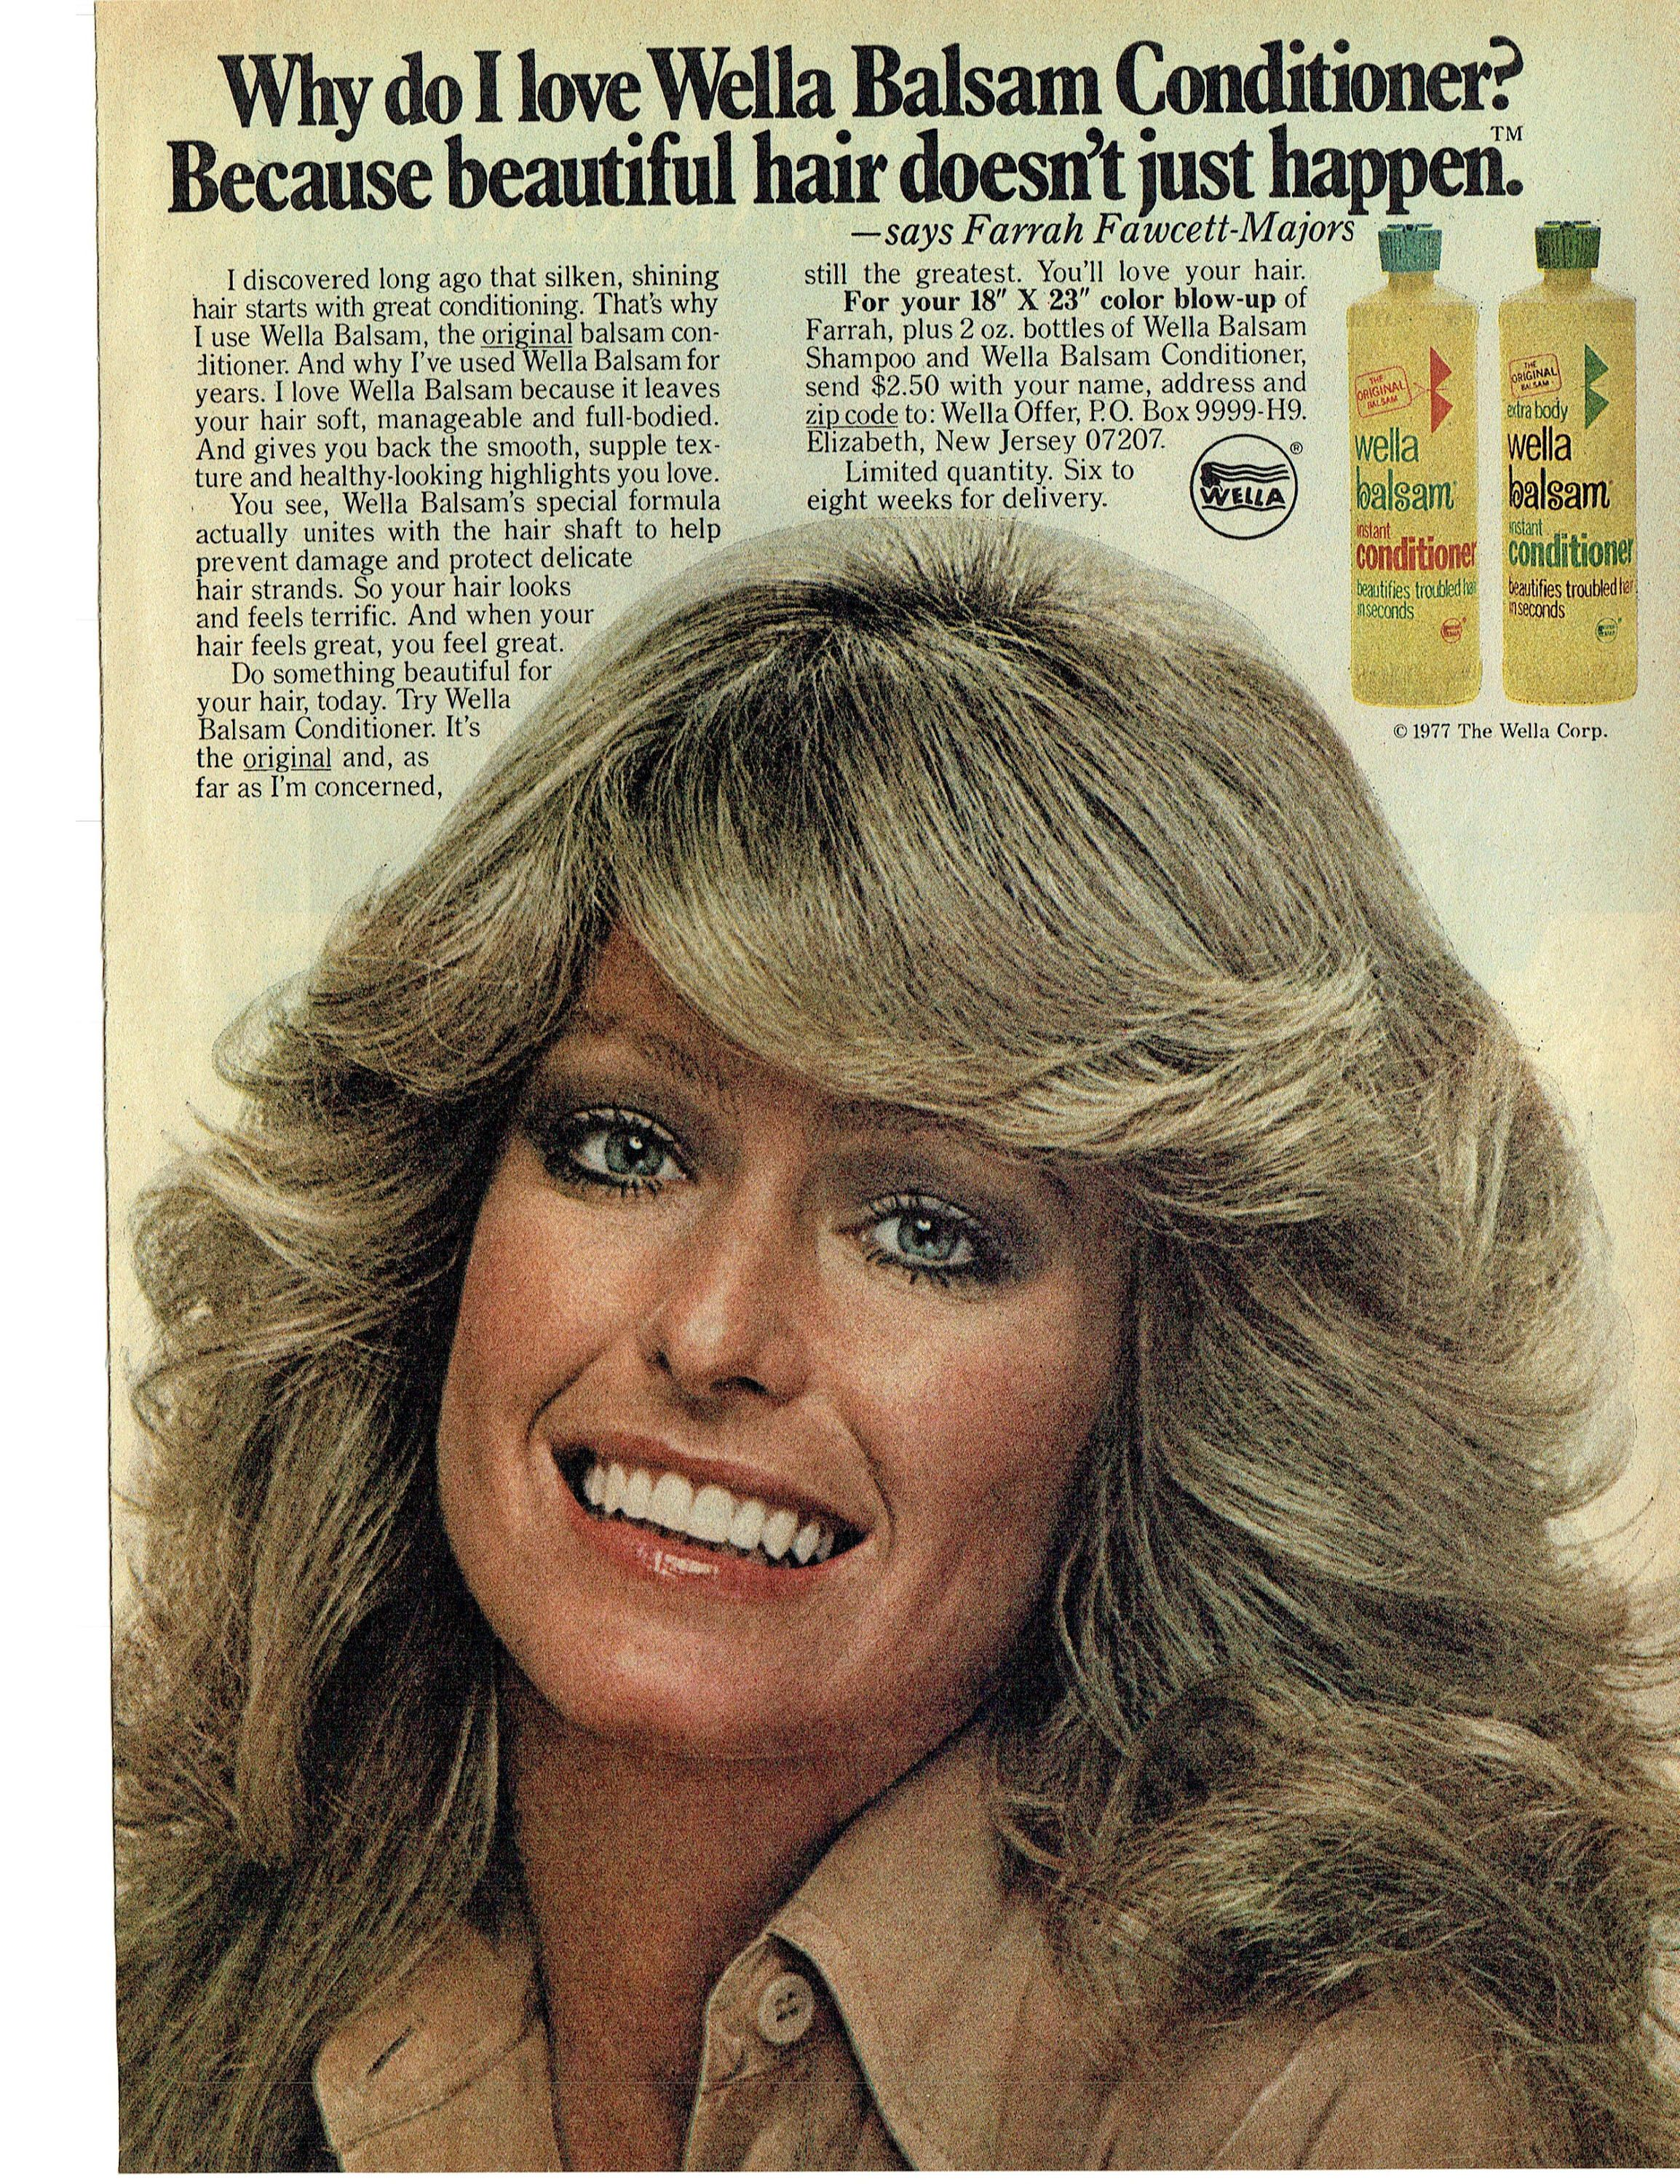 pin by raine pierre on favorite hair ads | vintage